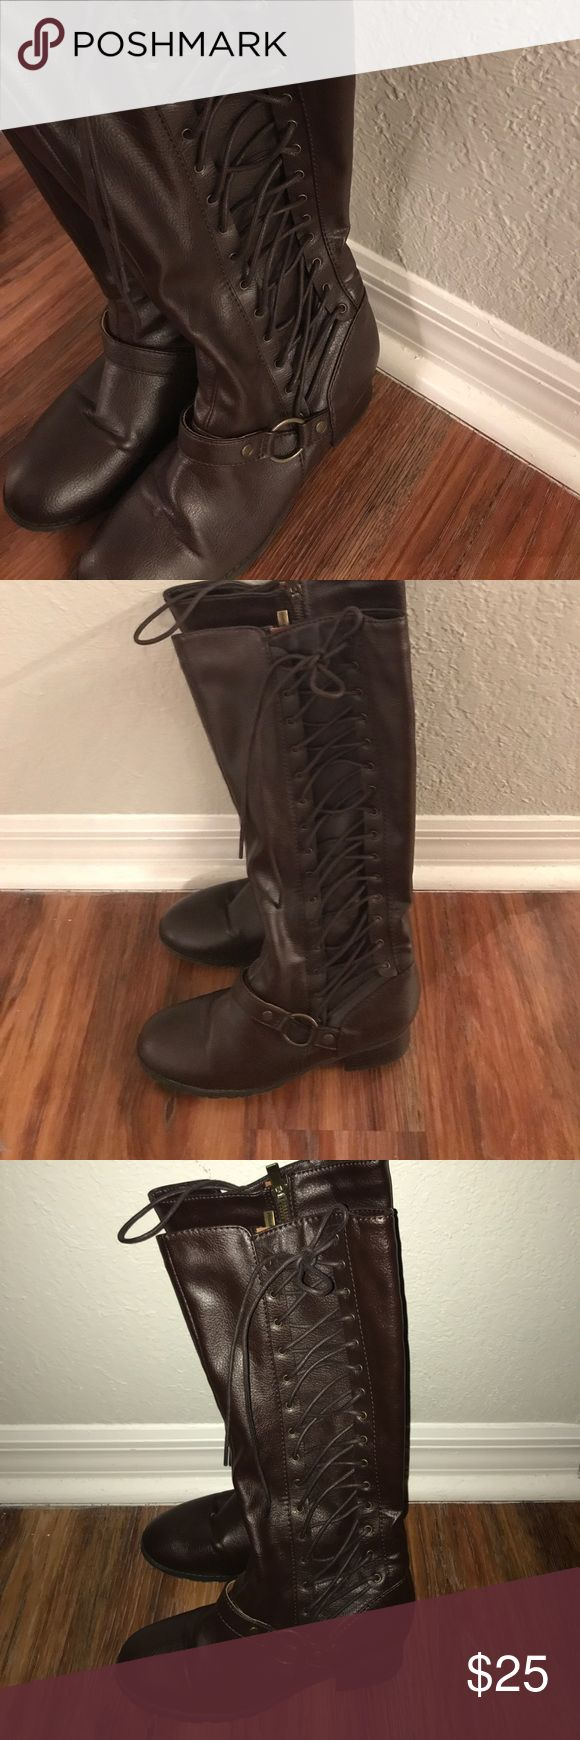 "Colin Stuart boots with detail Colin Stuart boots pleather brown boots. Size 6.5. Detail lace up on the outside and zipper on the inside. Never worn. 1"" heel. Colin Stuart Shoes Heeled Boots"